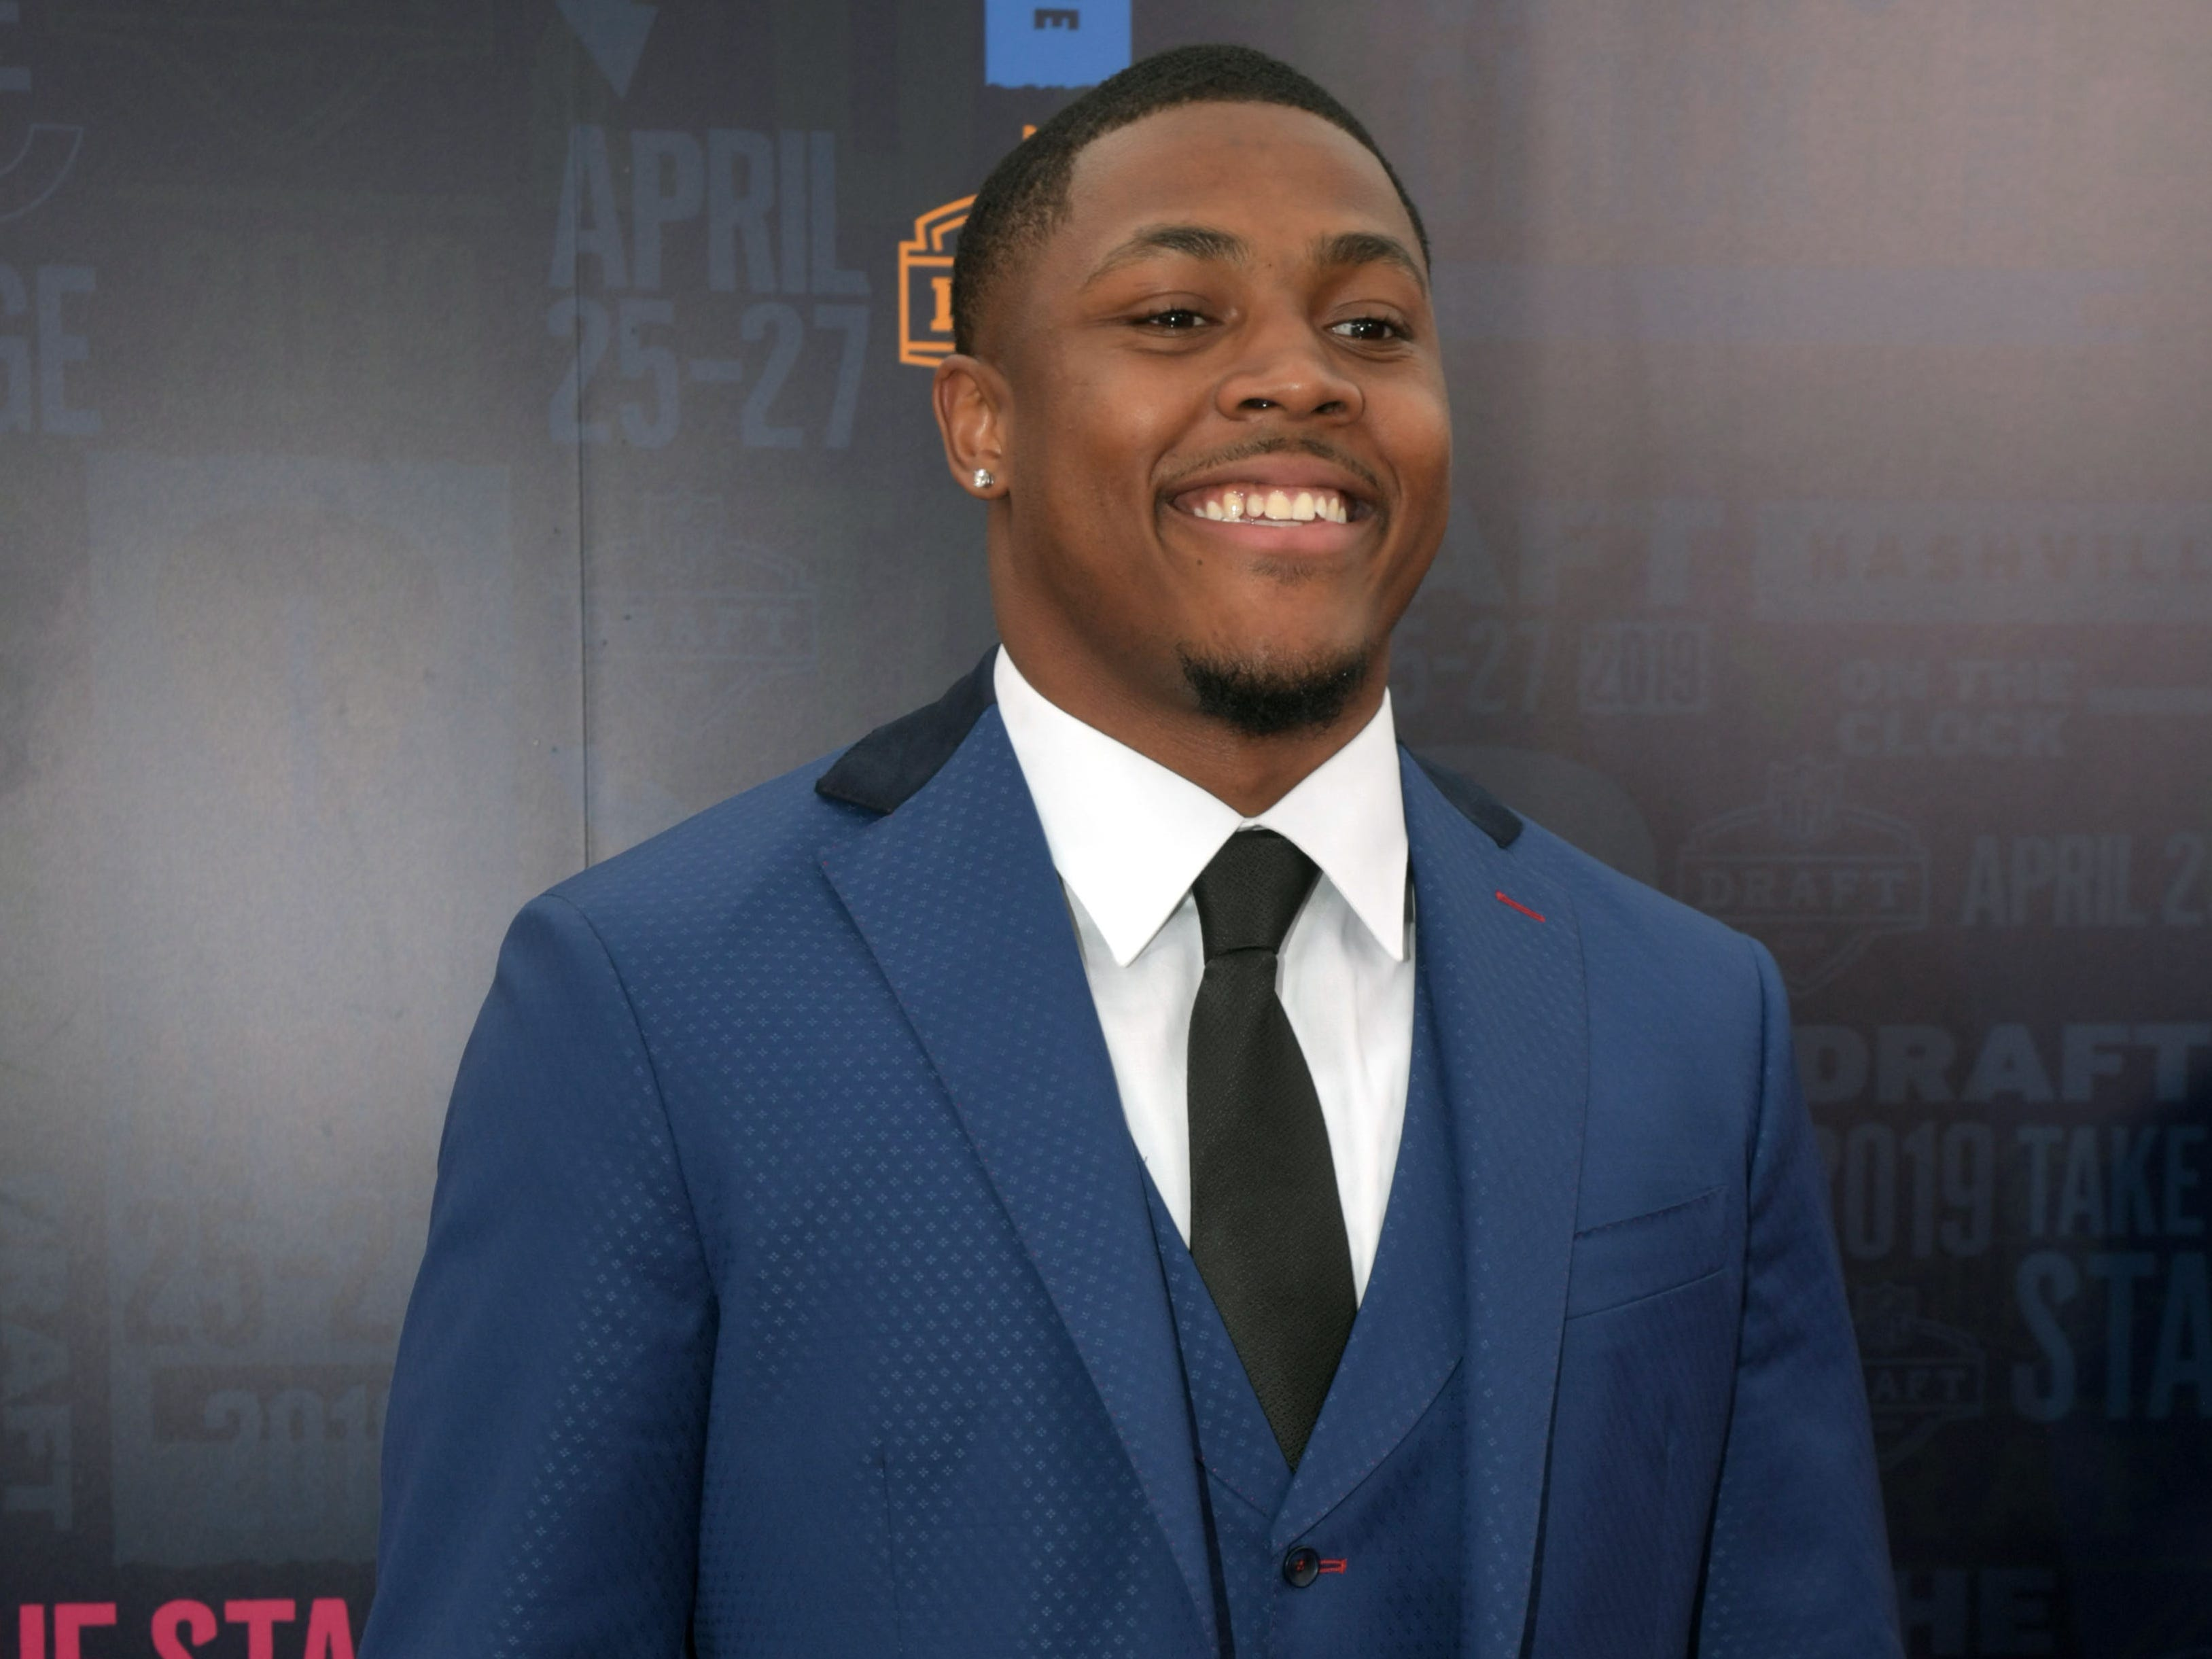 Apr 25, 2019; Nashville, TN, USA; Josh Jacobs (Alabama) on the red carpet prior to the first round of the 2019 NFL Draft in Downtown Nashville.